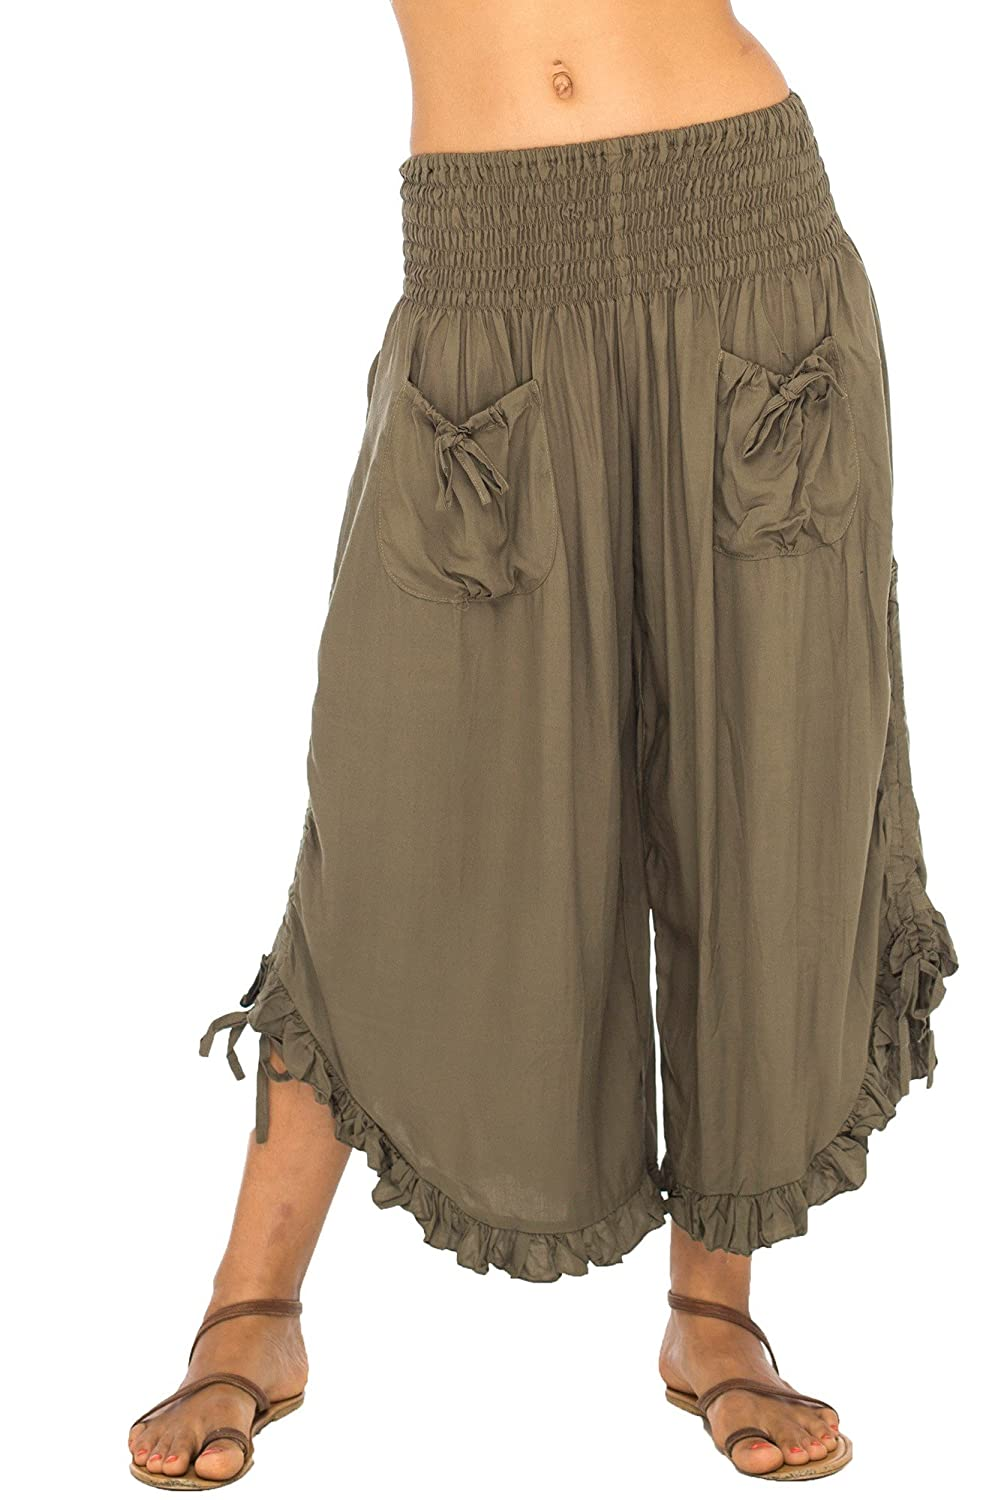 Women's Cropped Ruffled Wide Leg Olive Lady Pirate Pants - DeluxeAdultCostumes.com